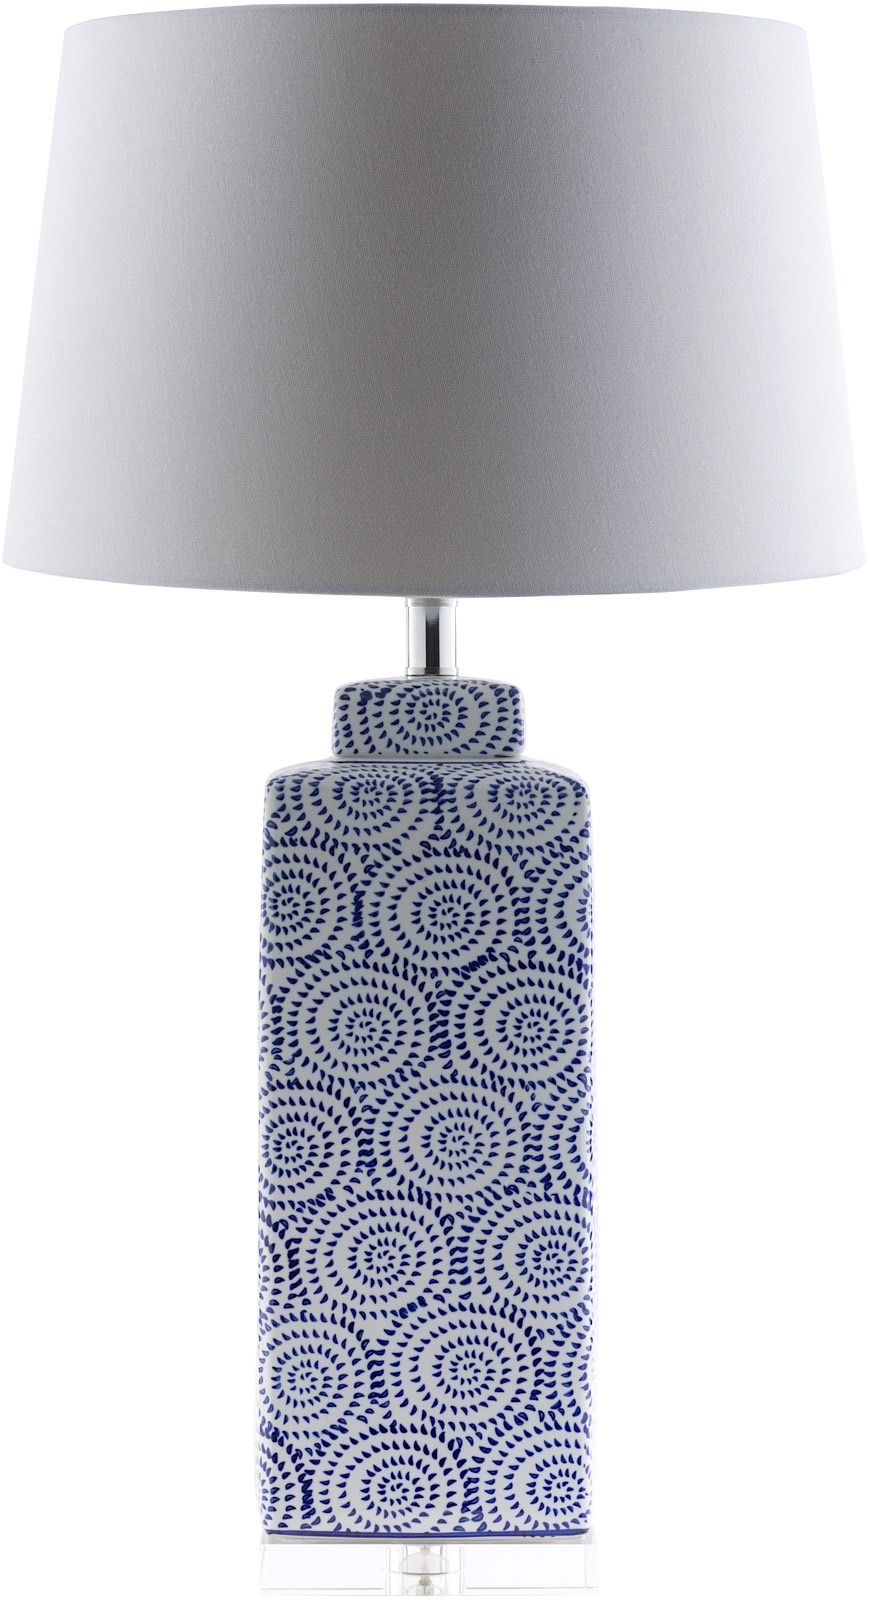 surya dunaway contemporary table lamp